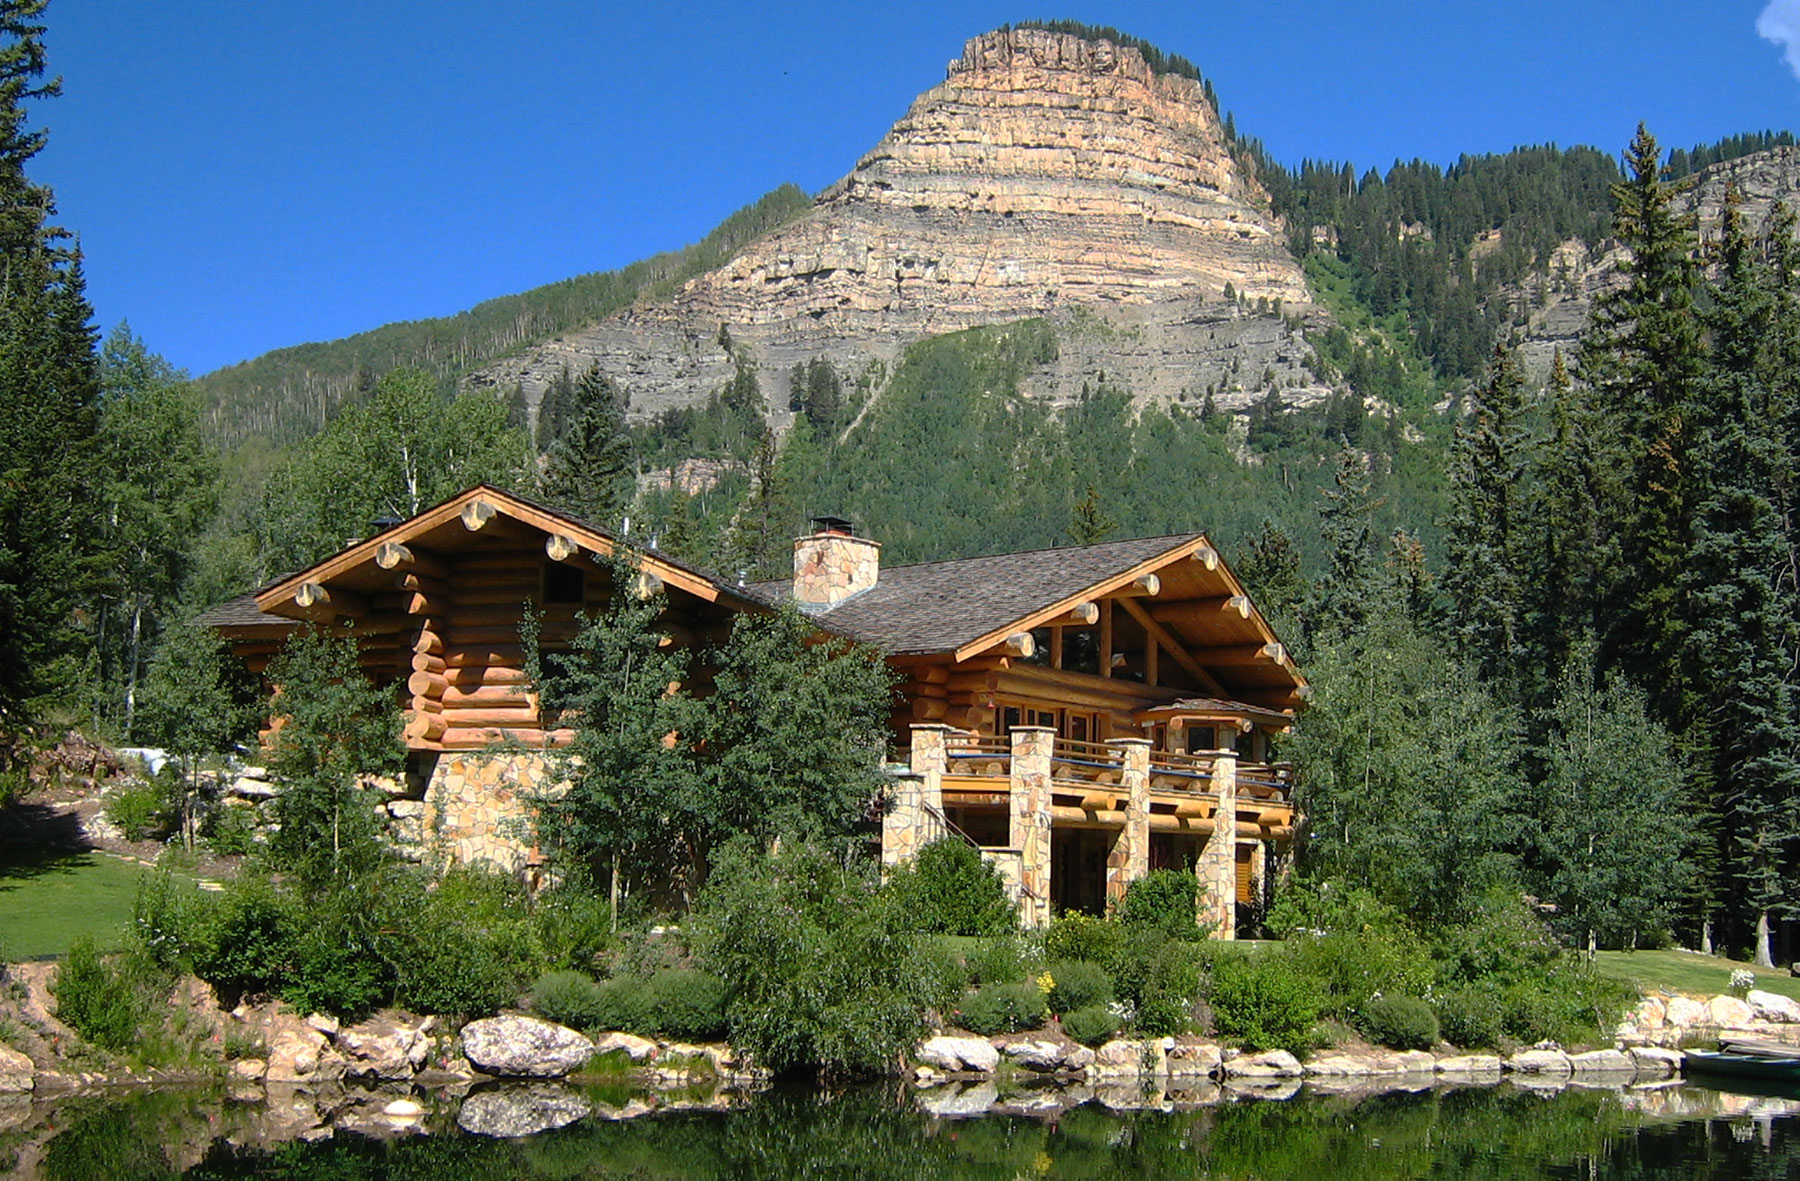 get acres or colorado in for hunting on cabins perfect southern from and way meadow camp log peaceful rustic trinidad a access properties easy cabin both walsenburg weekend setting sale homes